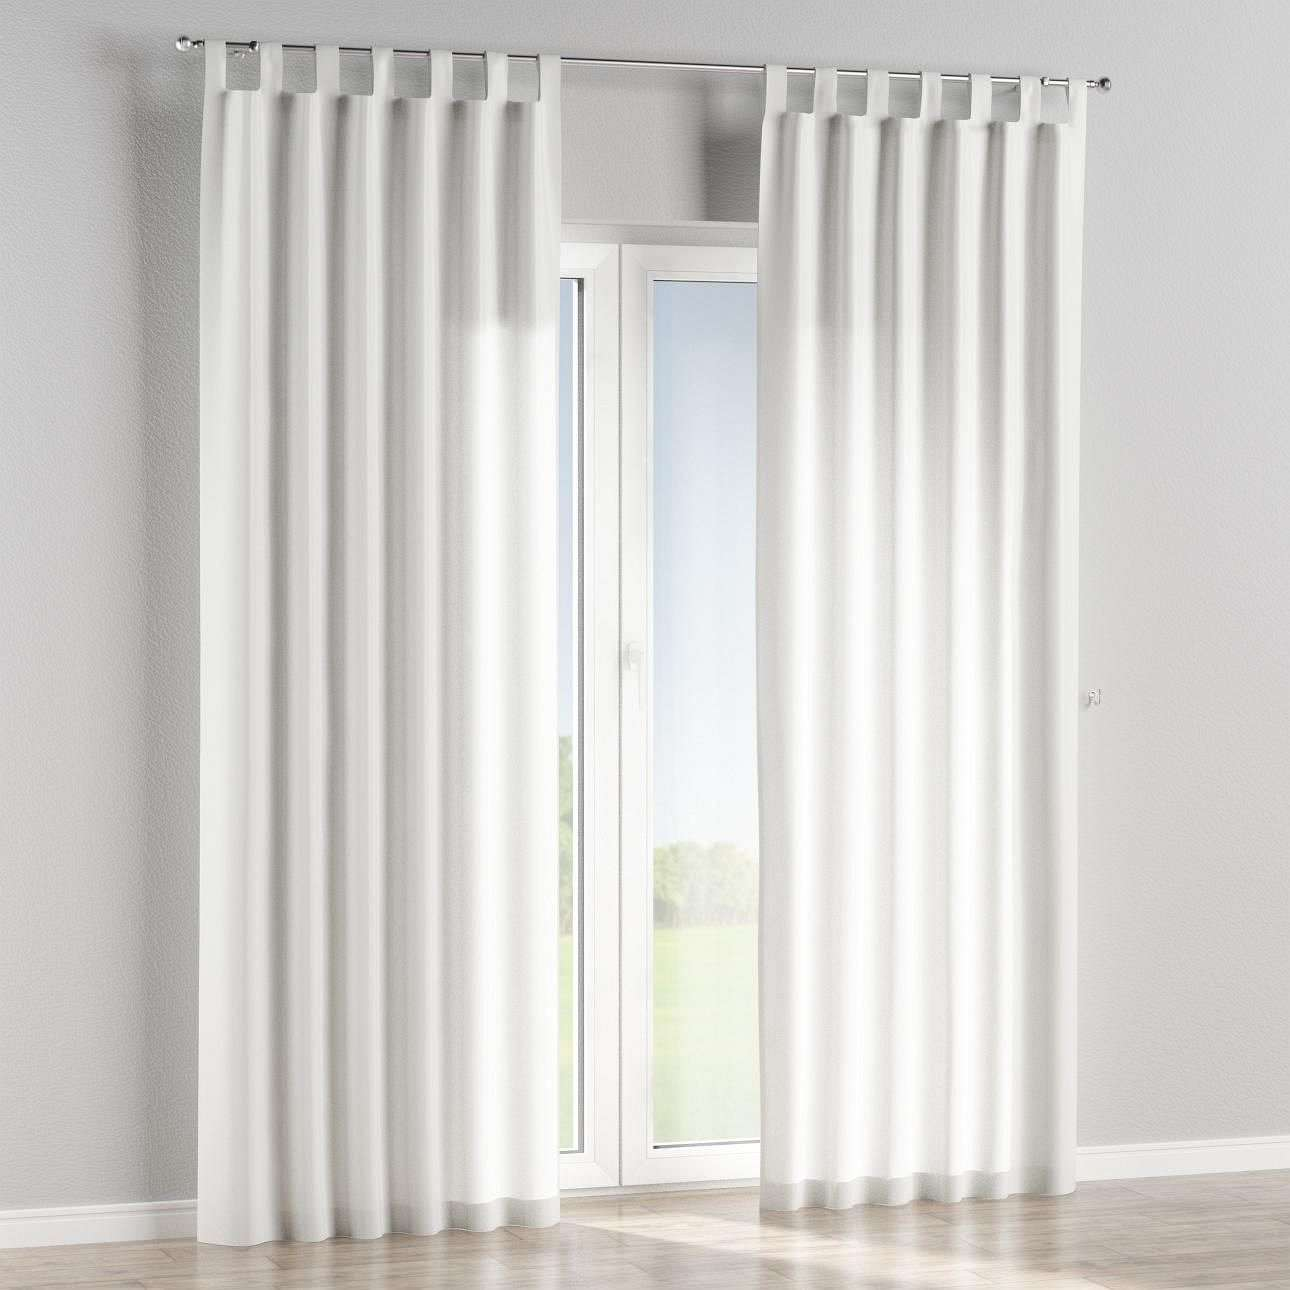 Tab top curtains in collection Mirella, fabric: 141-13